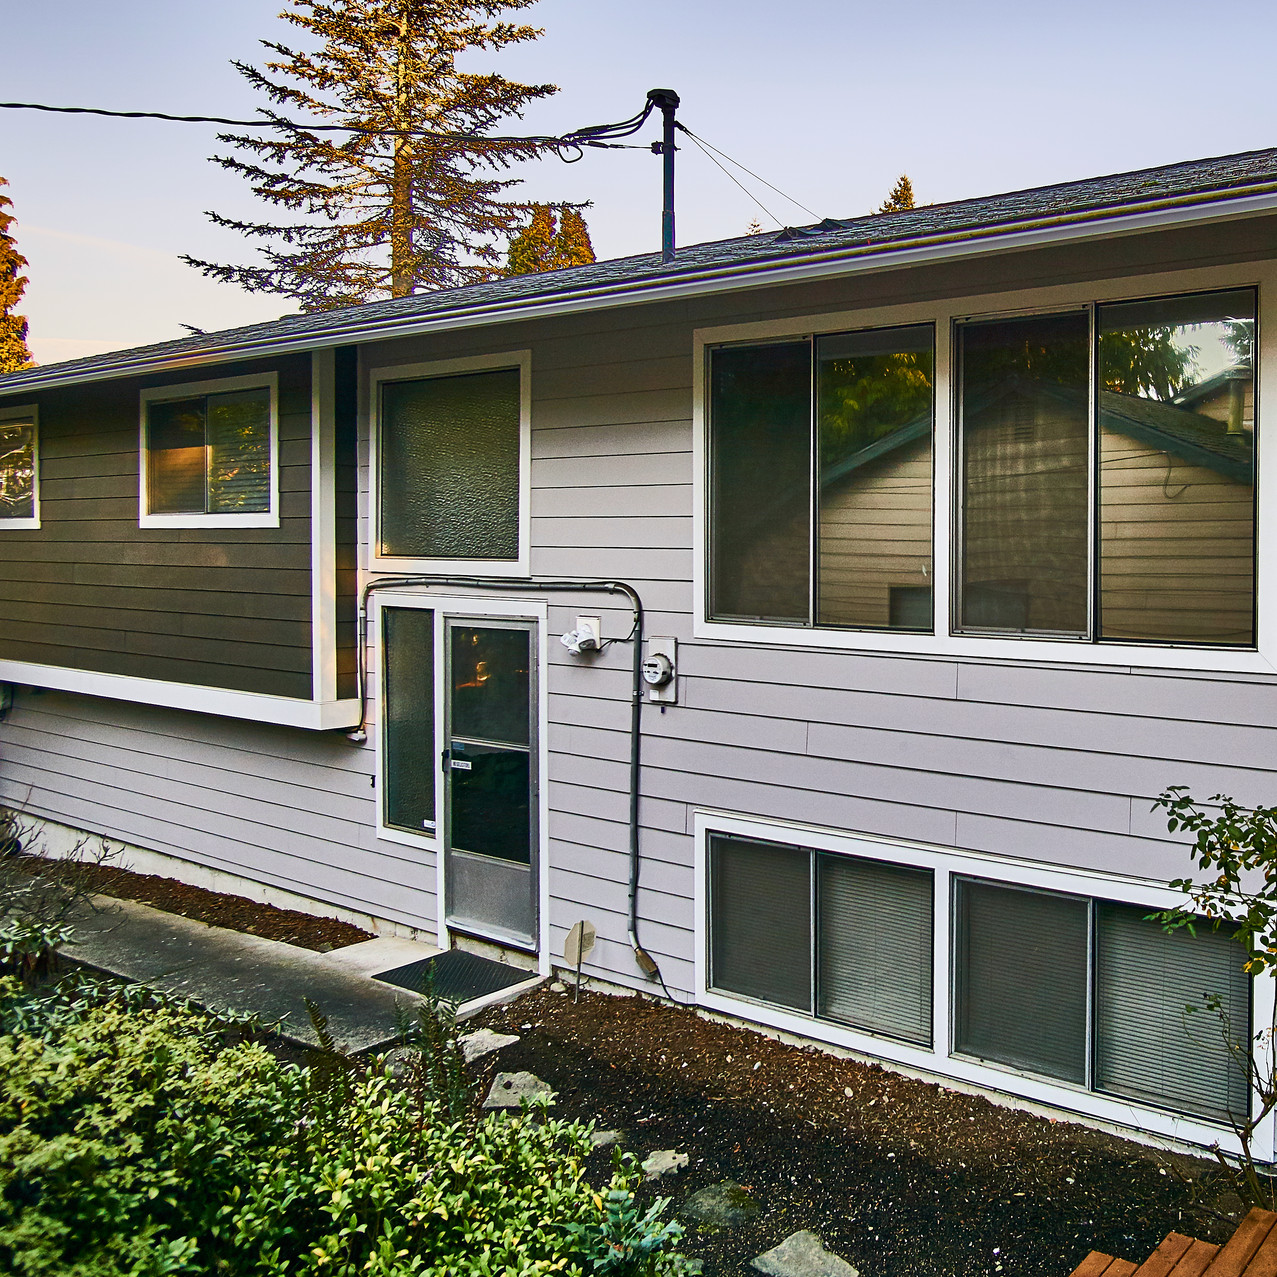 Northgate area house gets a facelift with colorplus lap siding